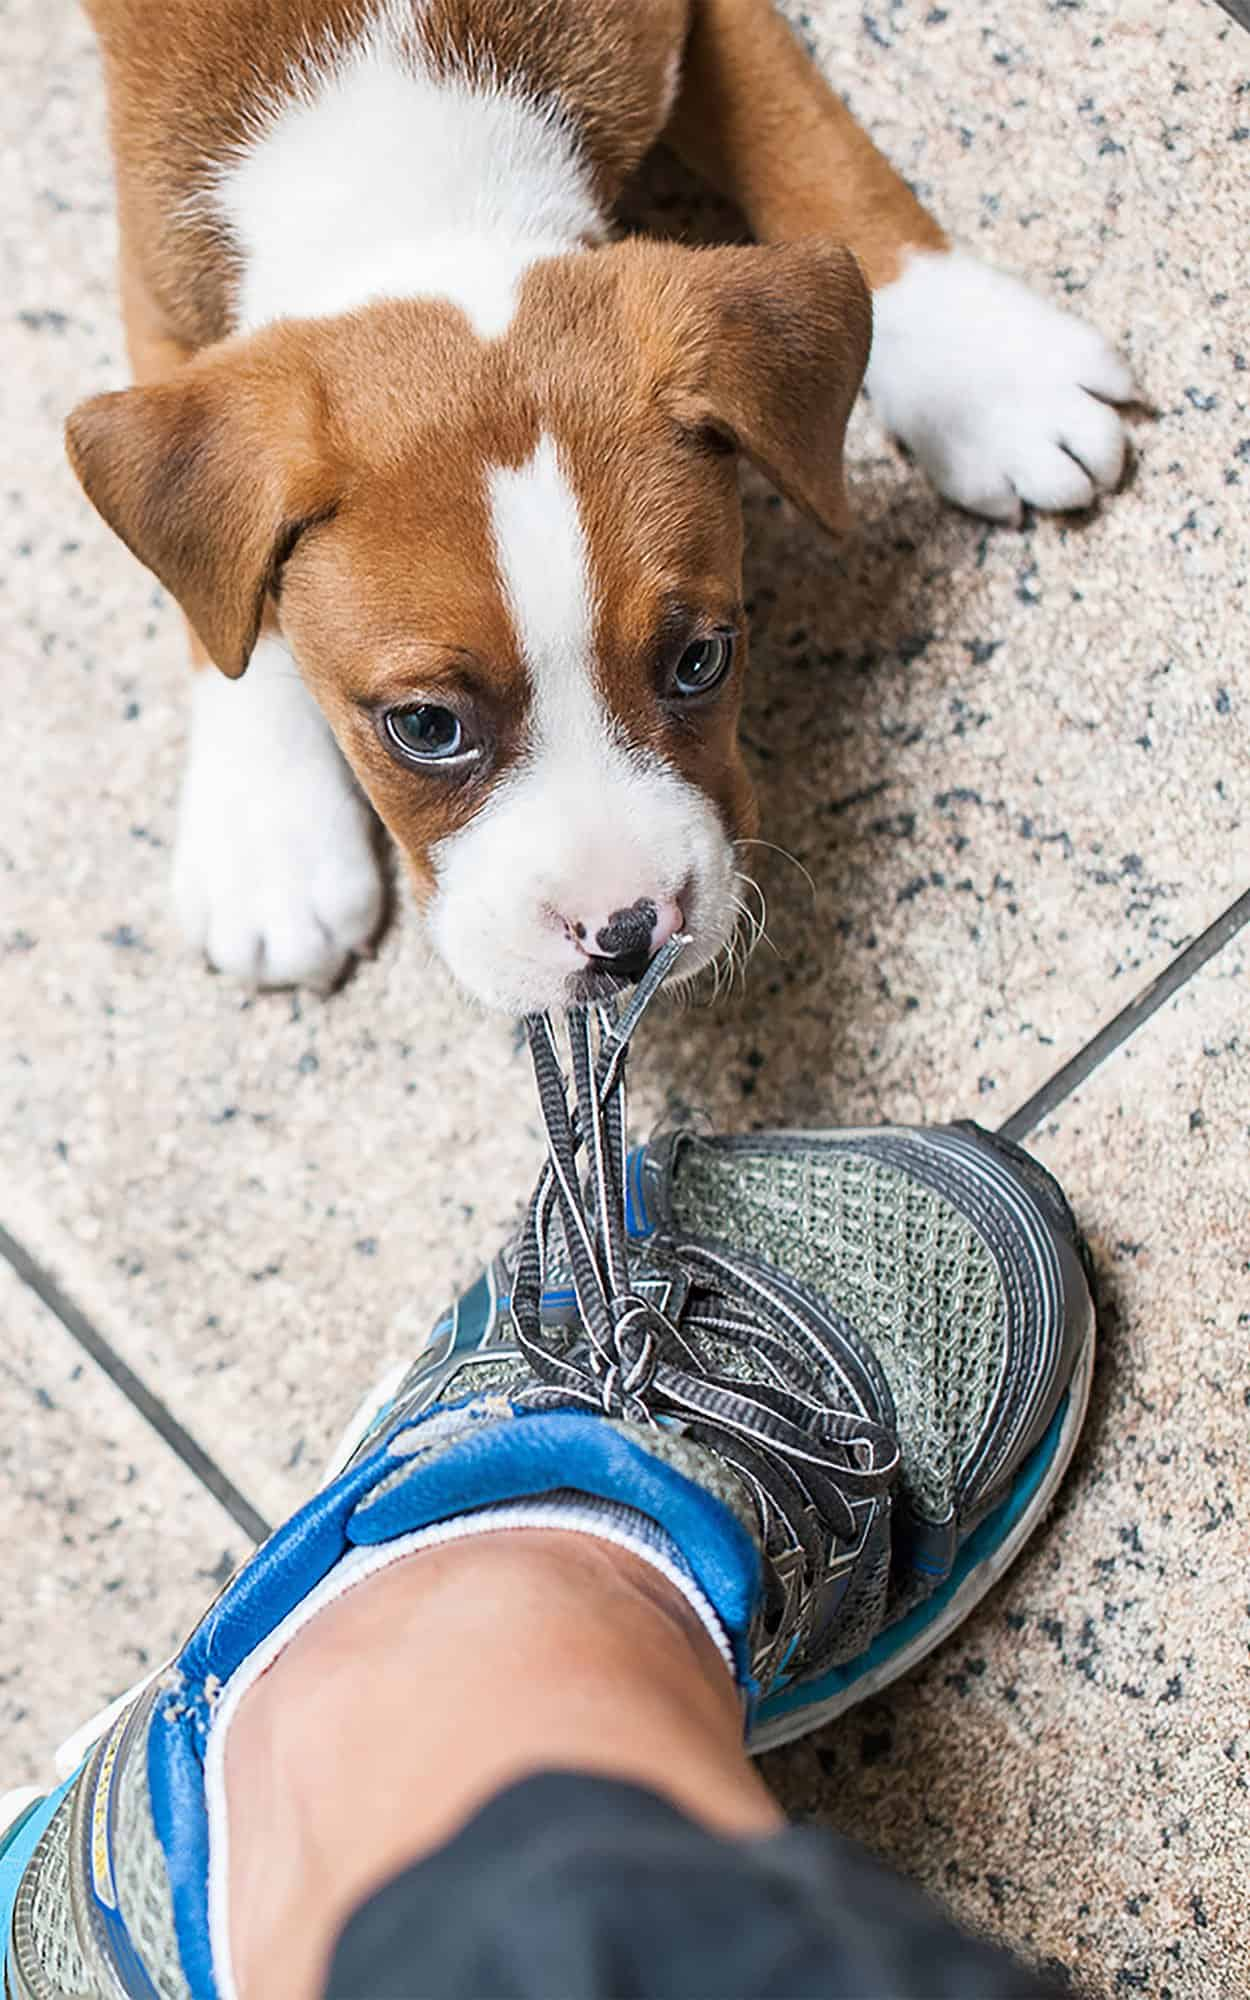 Young Puppy tugging at laces